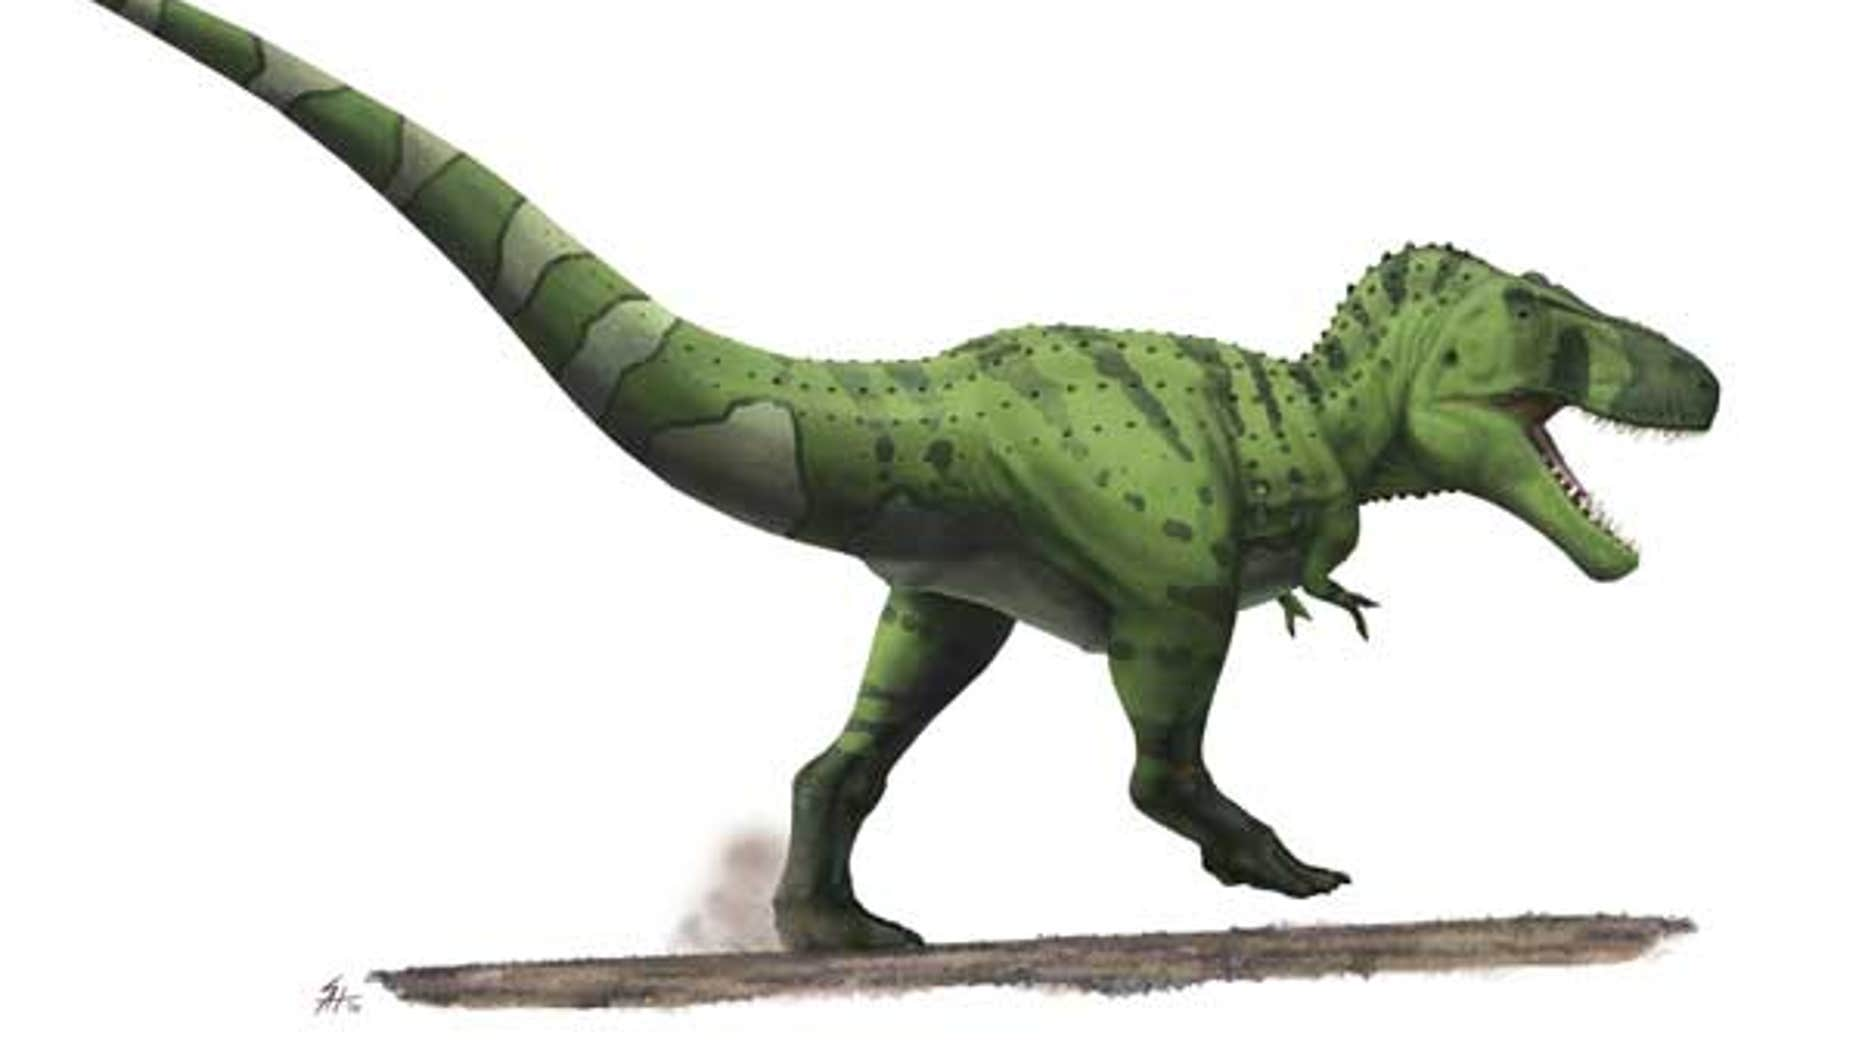 Here a fleshed-out reconstruction of the meat-eater T. rex reveals its bulky rear end and tail muscles